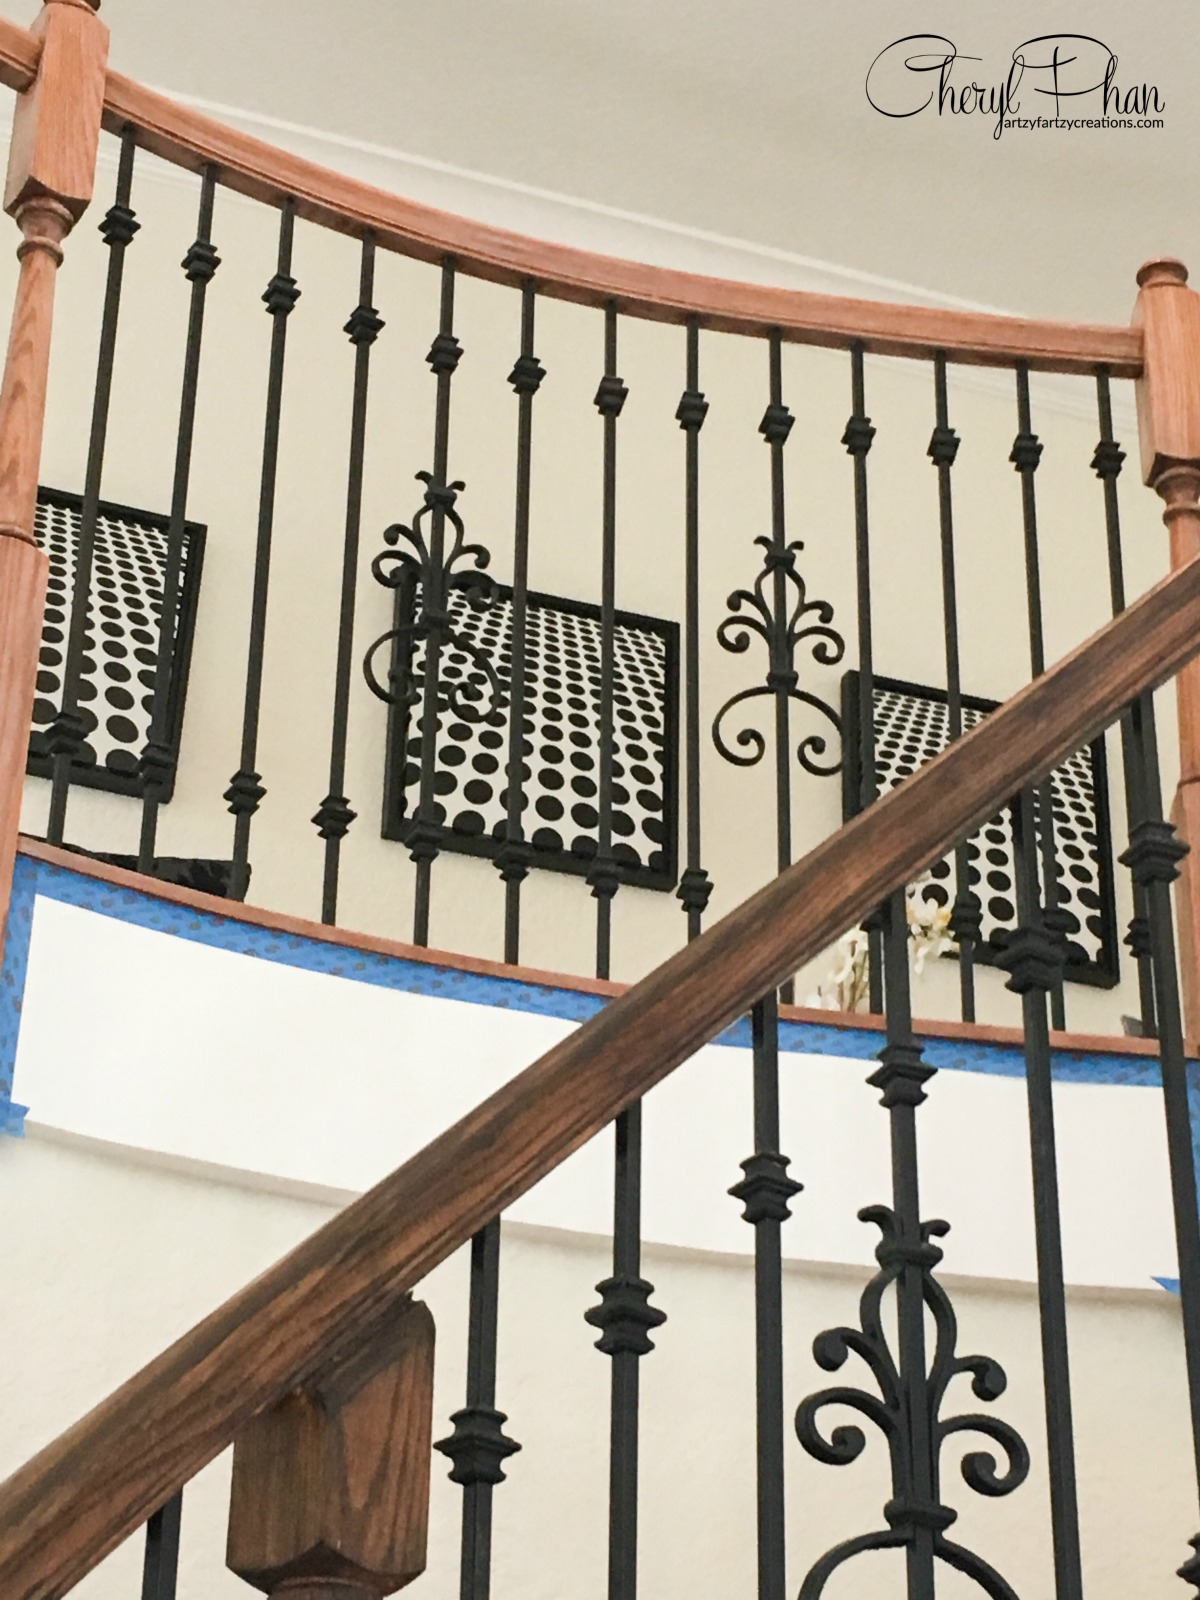 Stained Staircase Rail Cheryl Phan